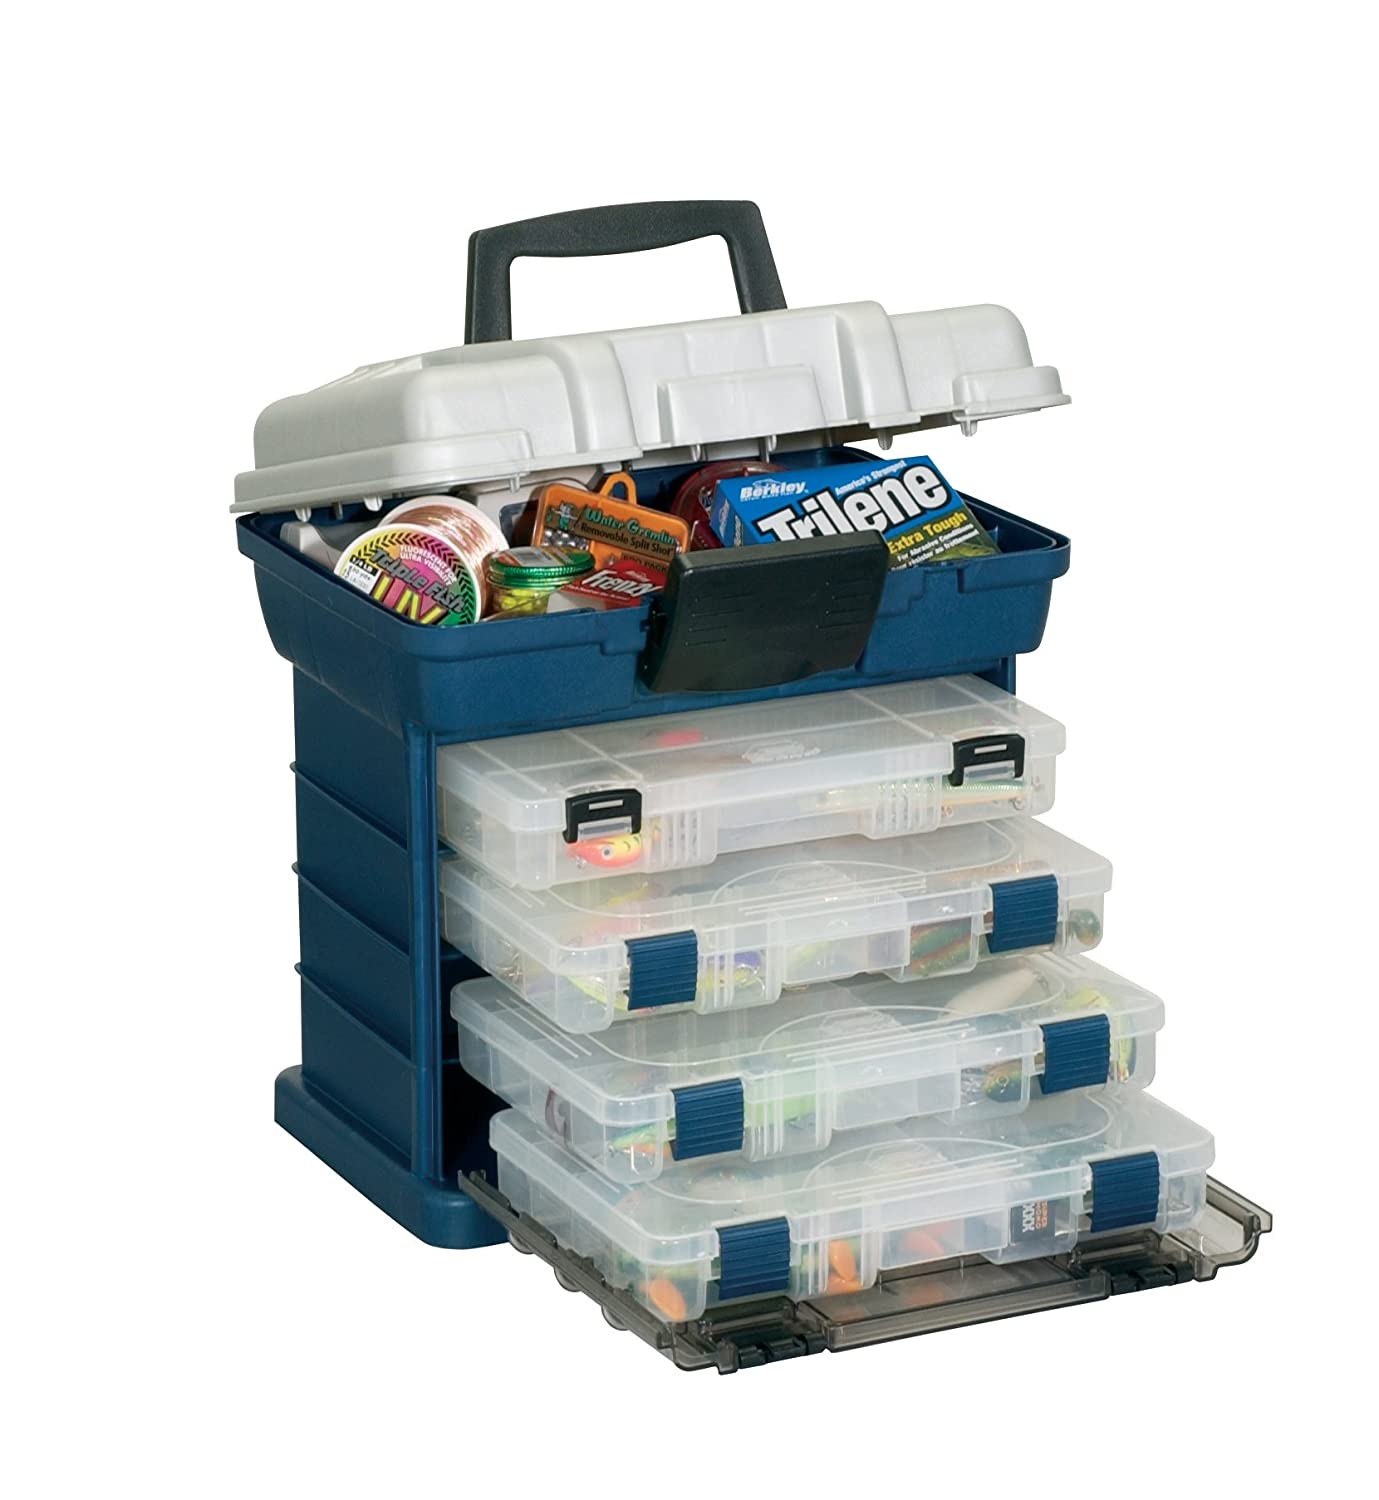 Plano 1364 4 by rack system 3650 size tackle organizer for Large tackle boxes for fishing